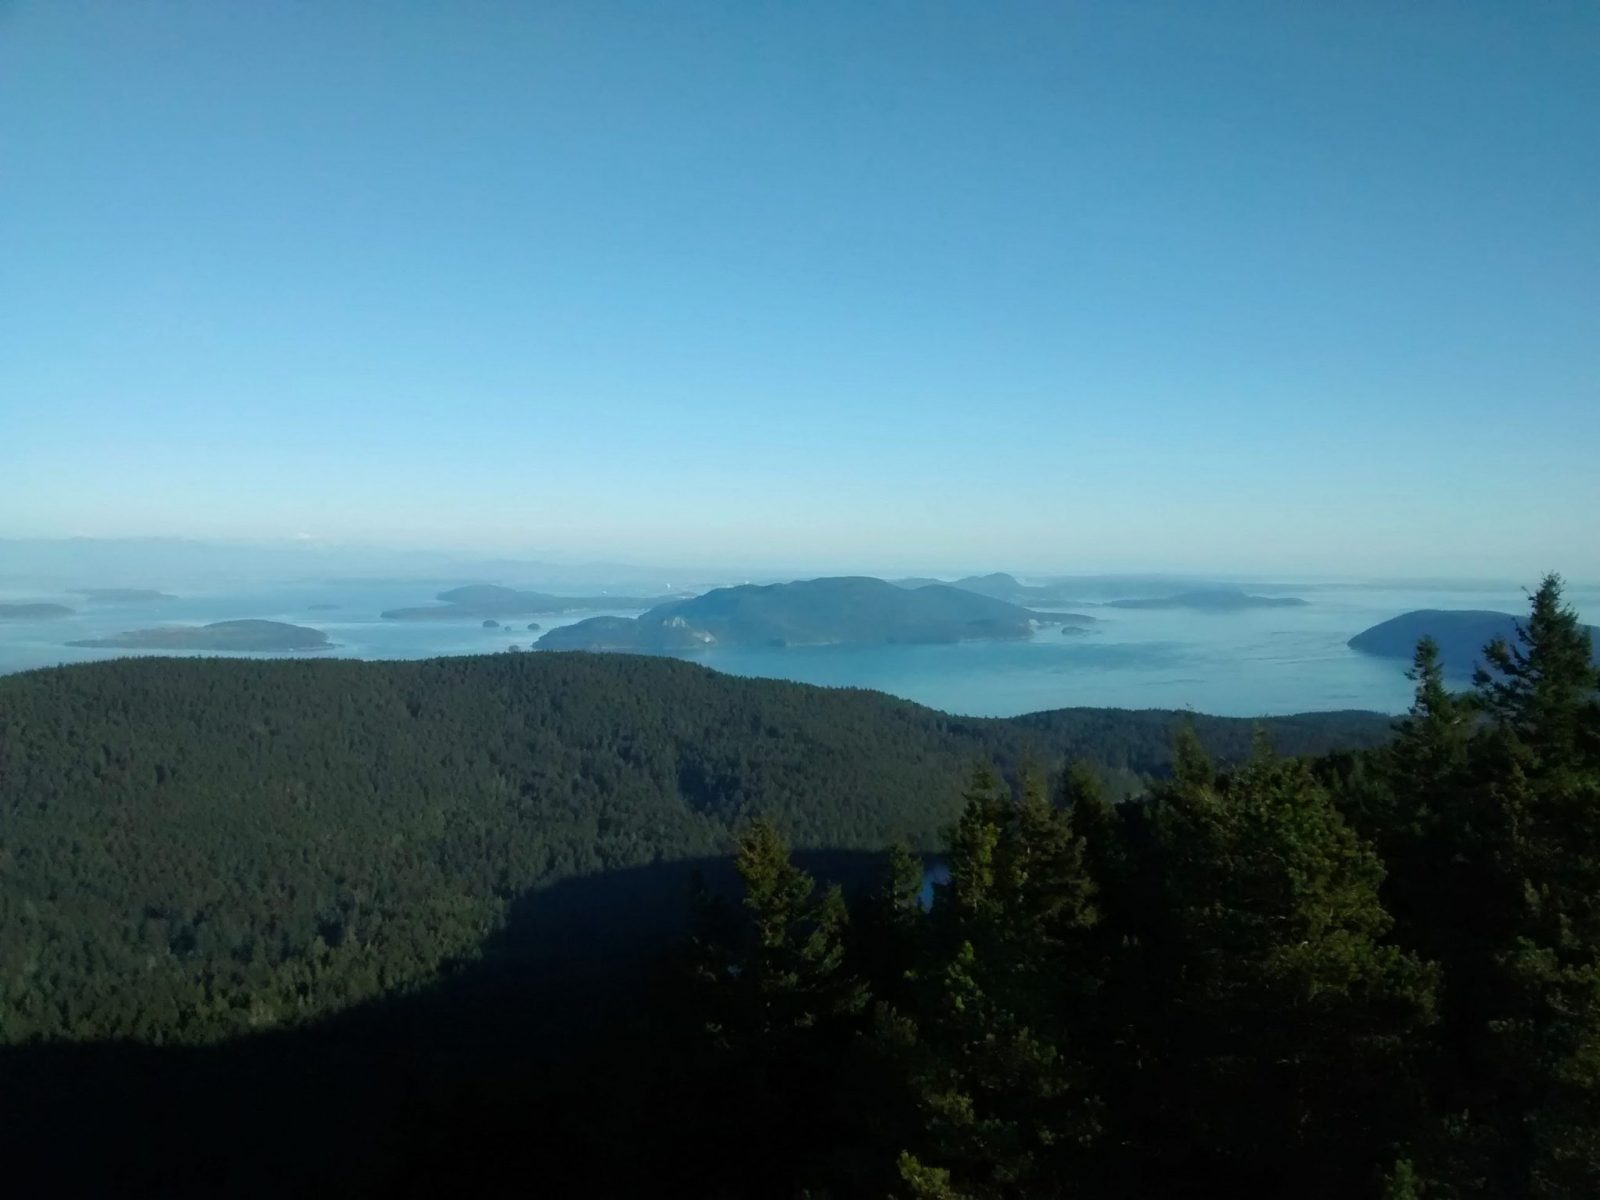 View from a high place above the forest. There are near and distant forested islands in a blue sea on a sunny, clear day